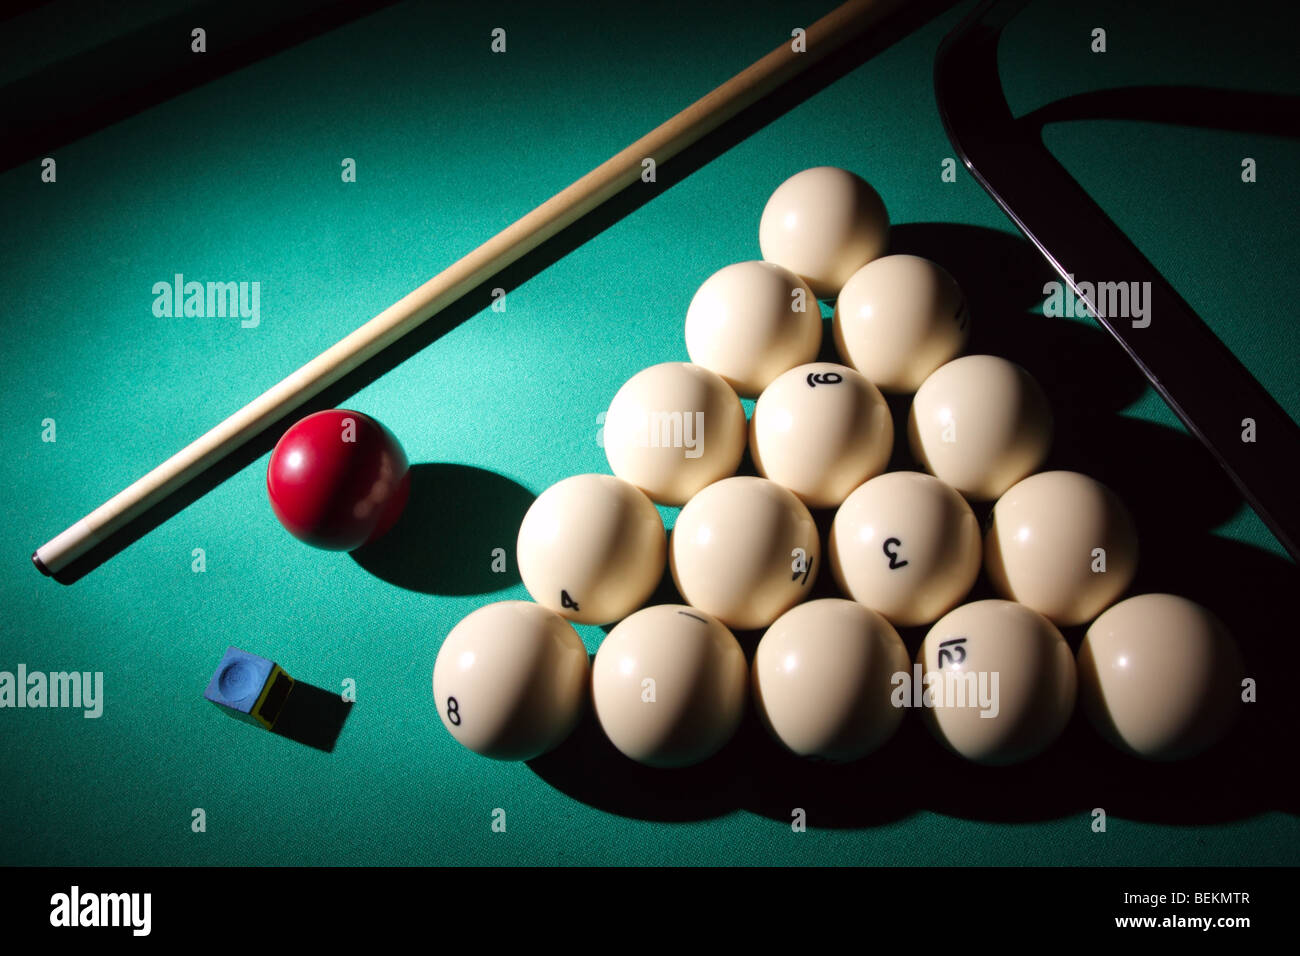 Pool balls on light beam. Balls pyramid with cue on a pool table. - Stock Image